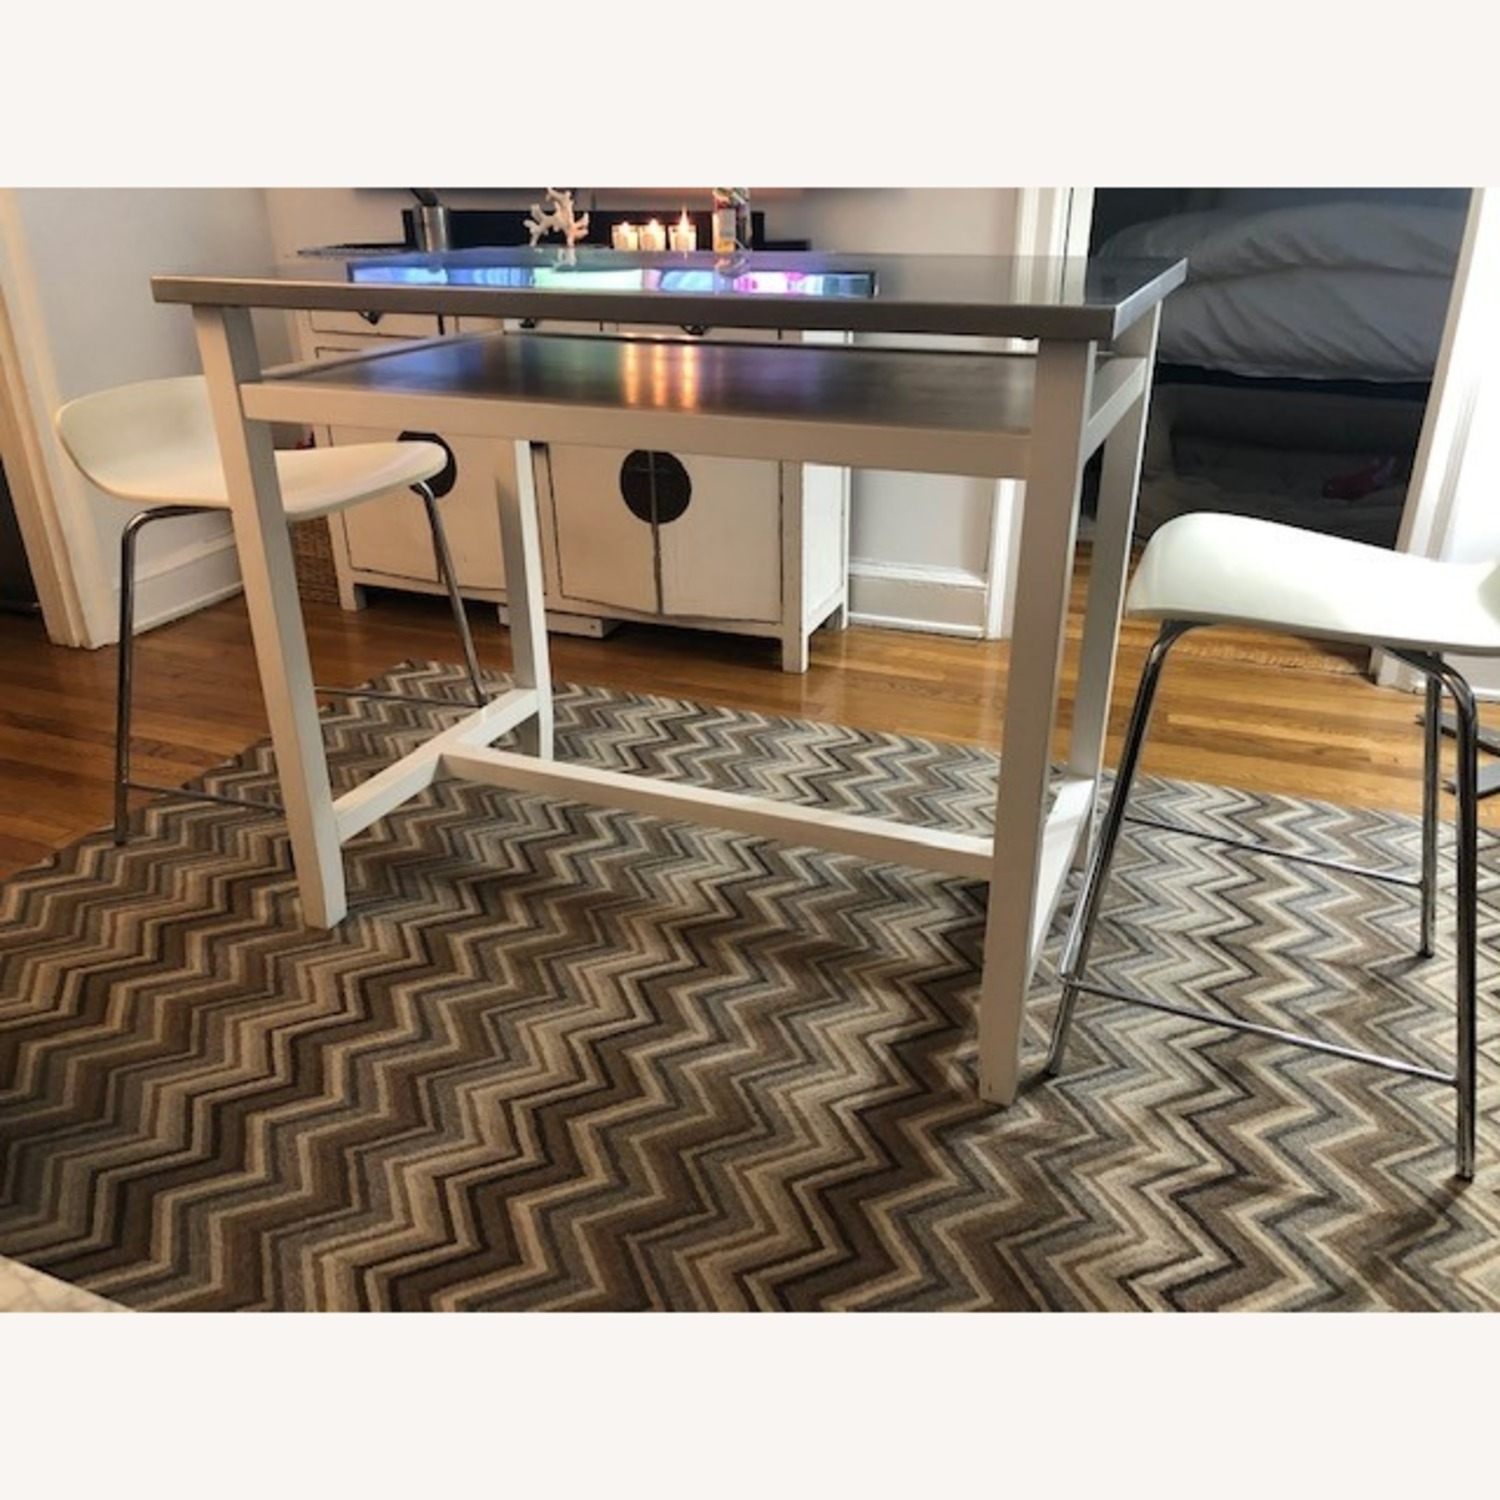 Crate & Barrel Stainless Steel High Top Table - image-1